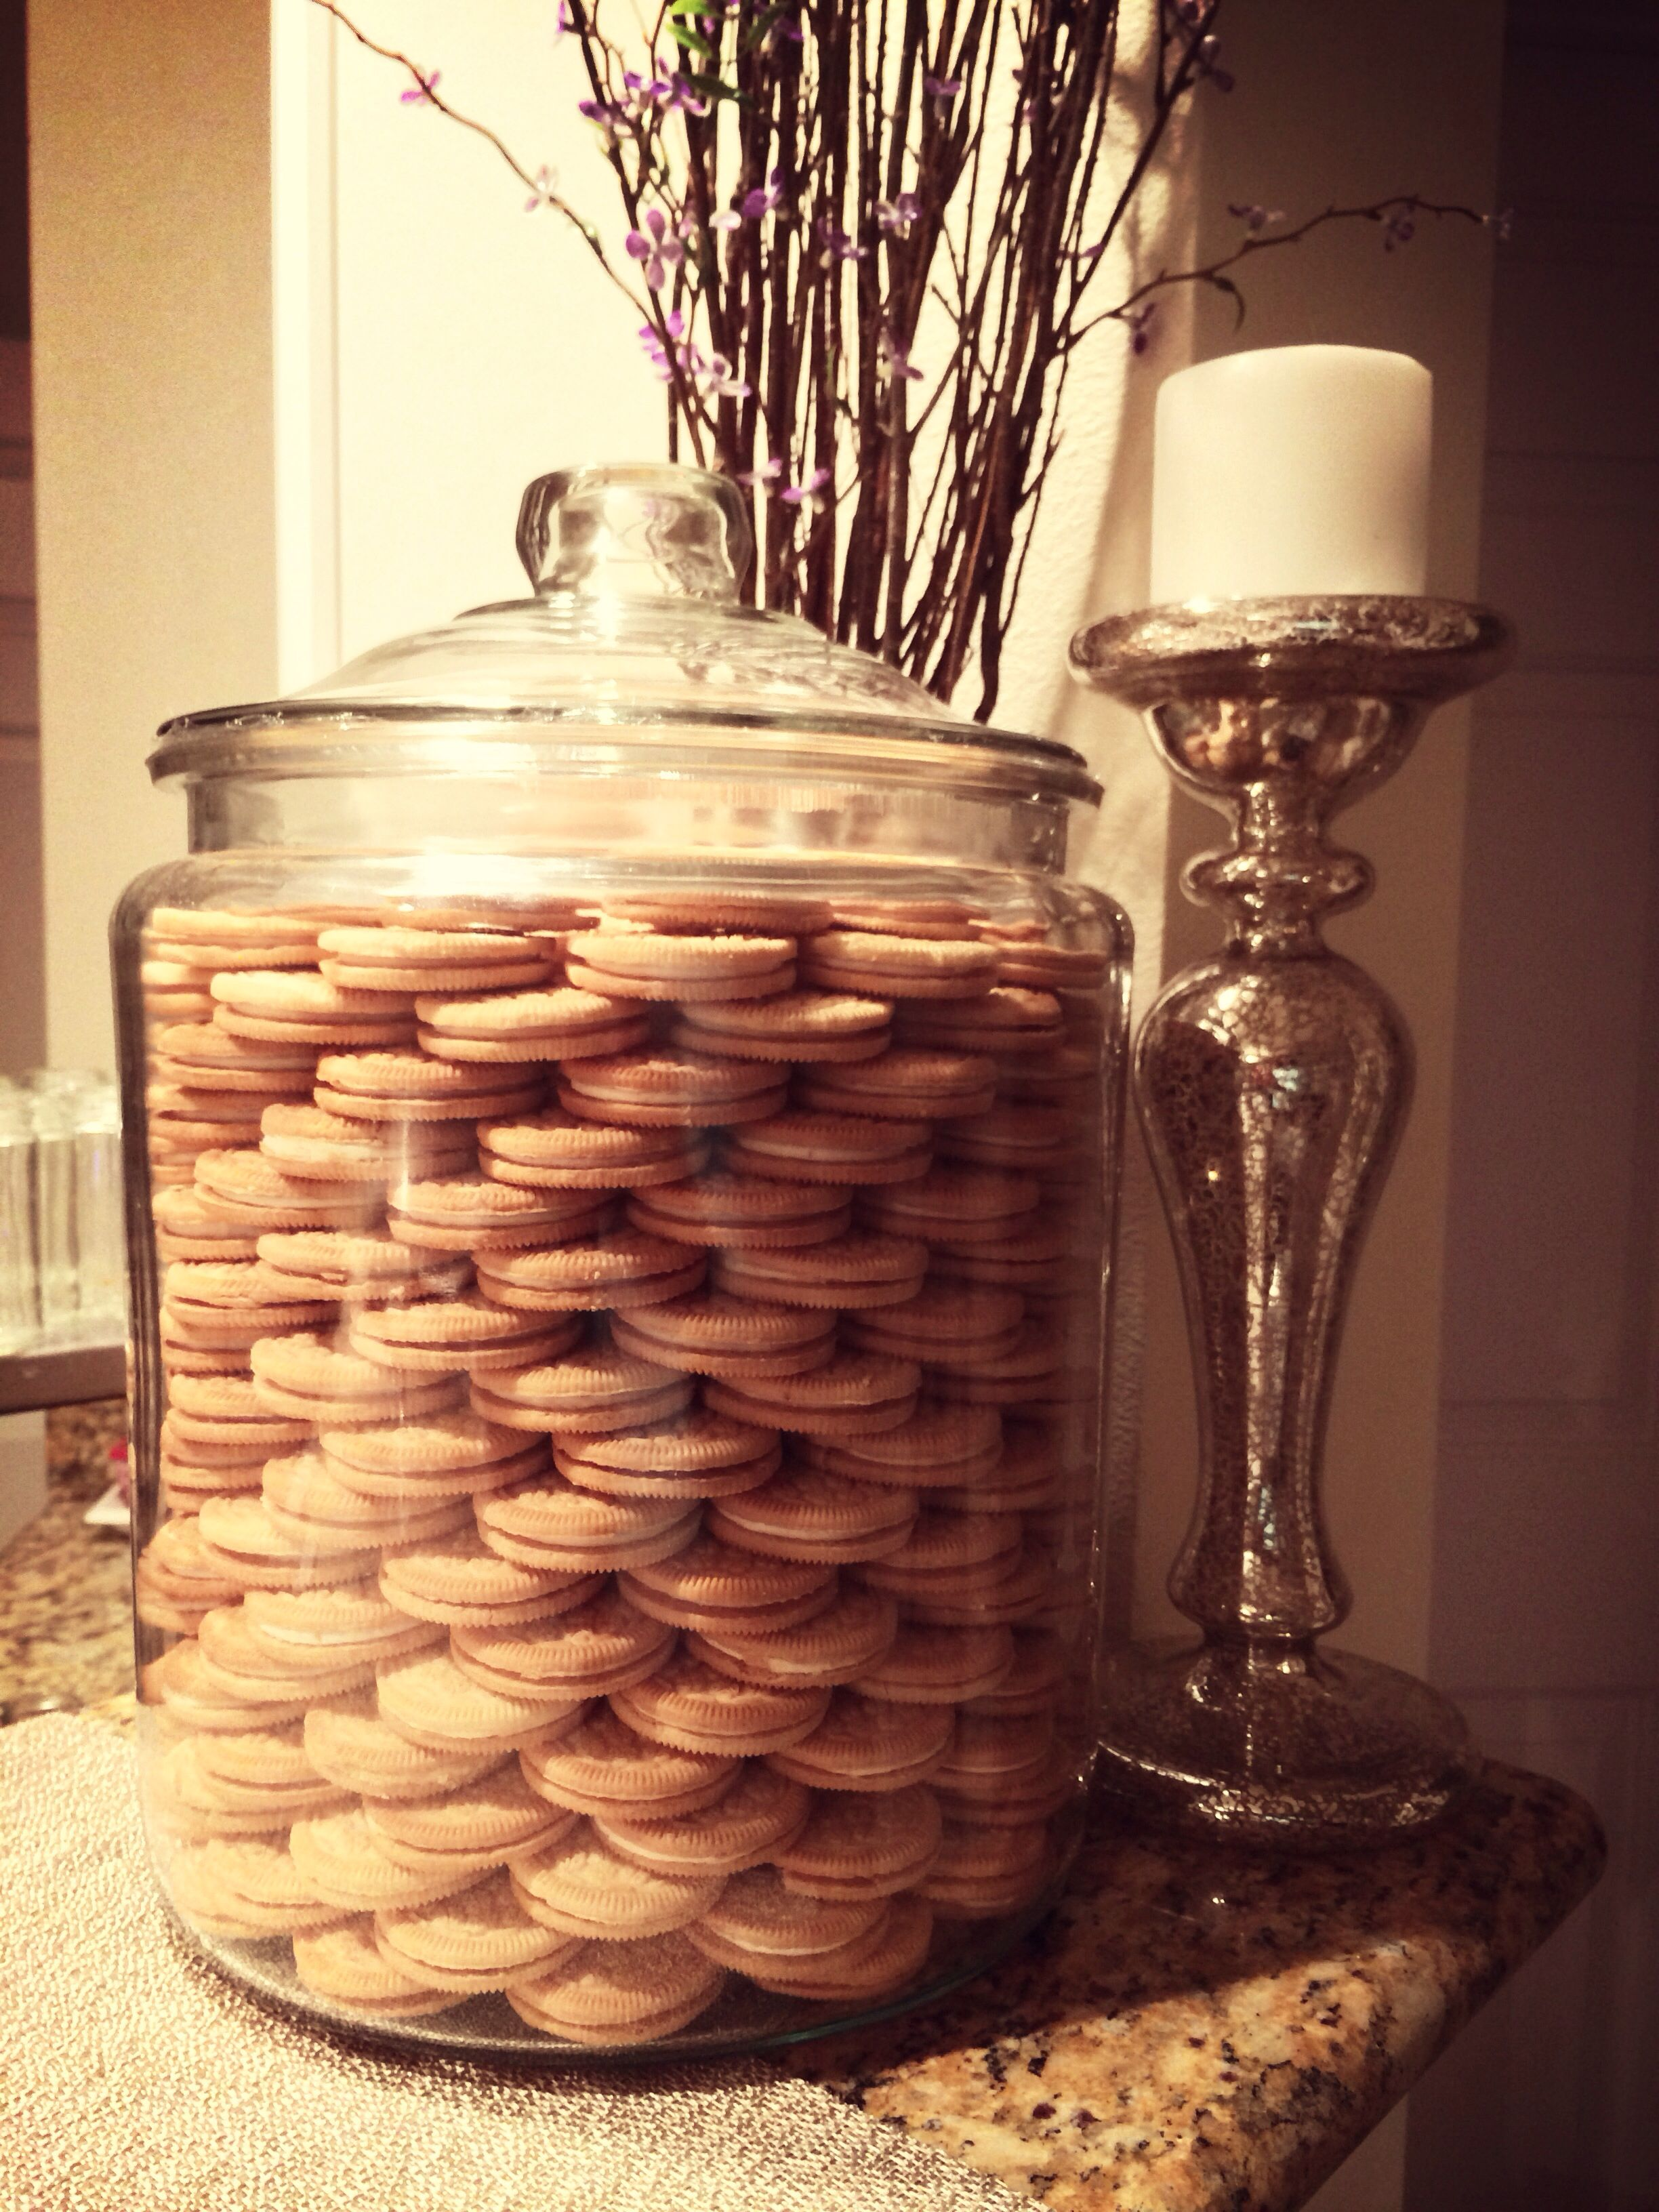 My Khloe Kardashian Inspired Cookie Jar